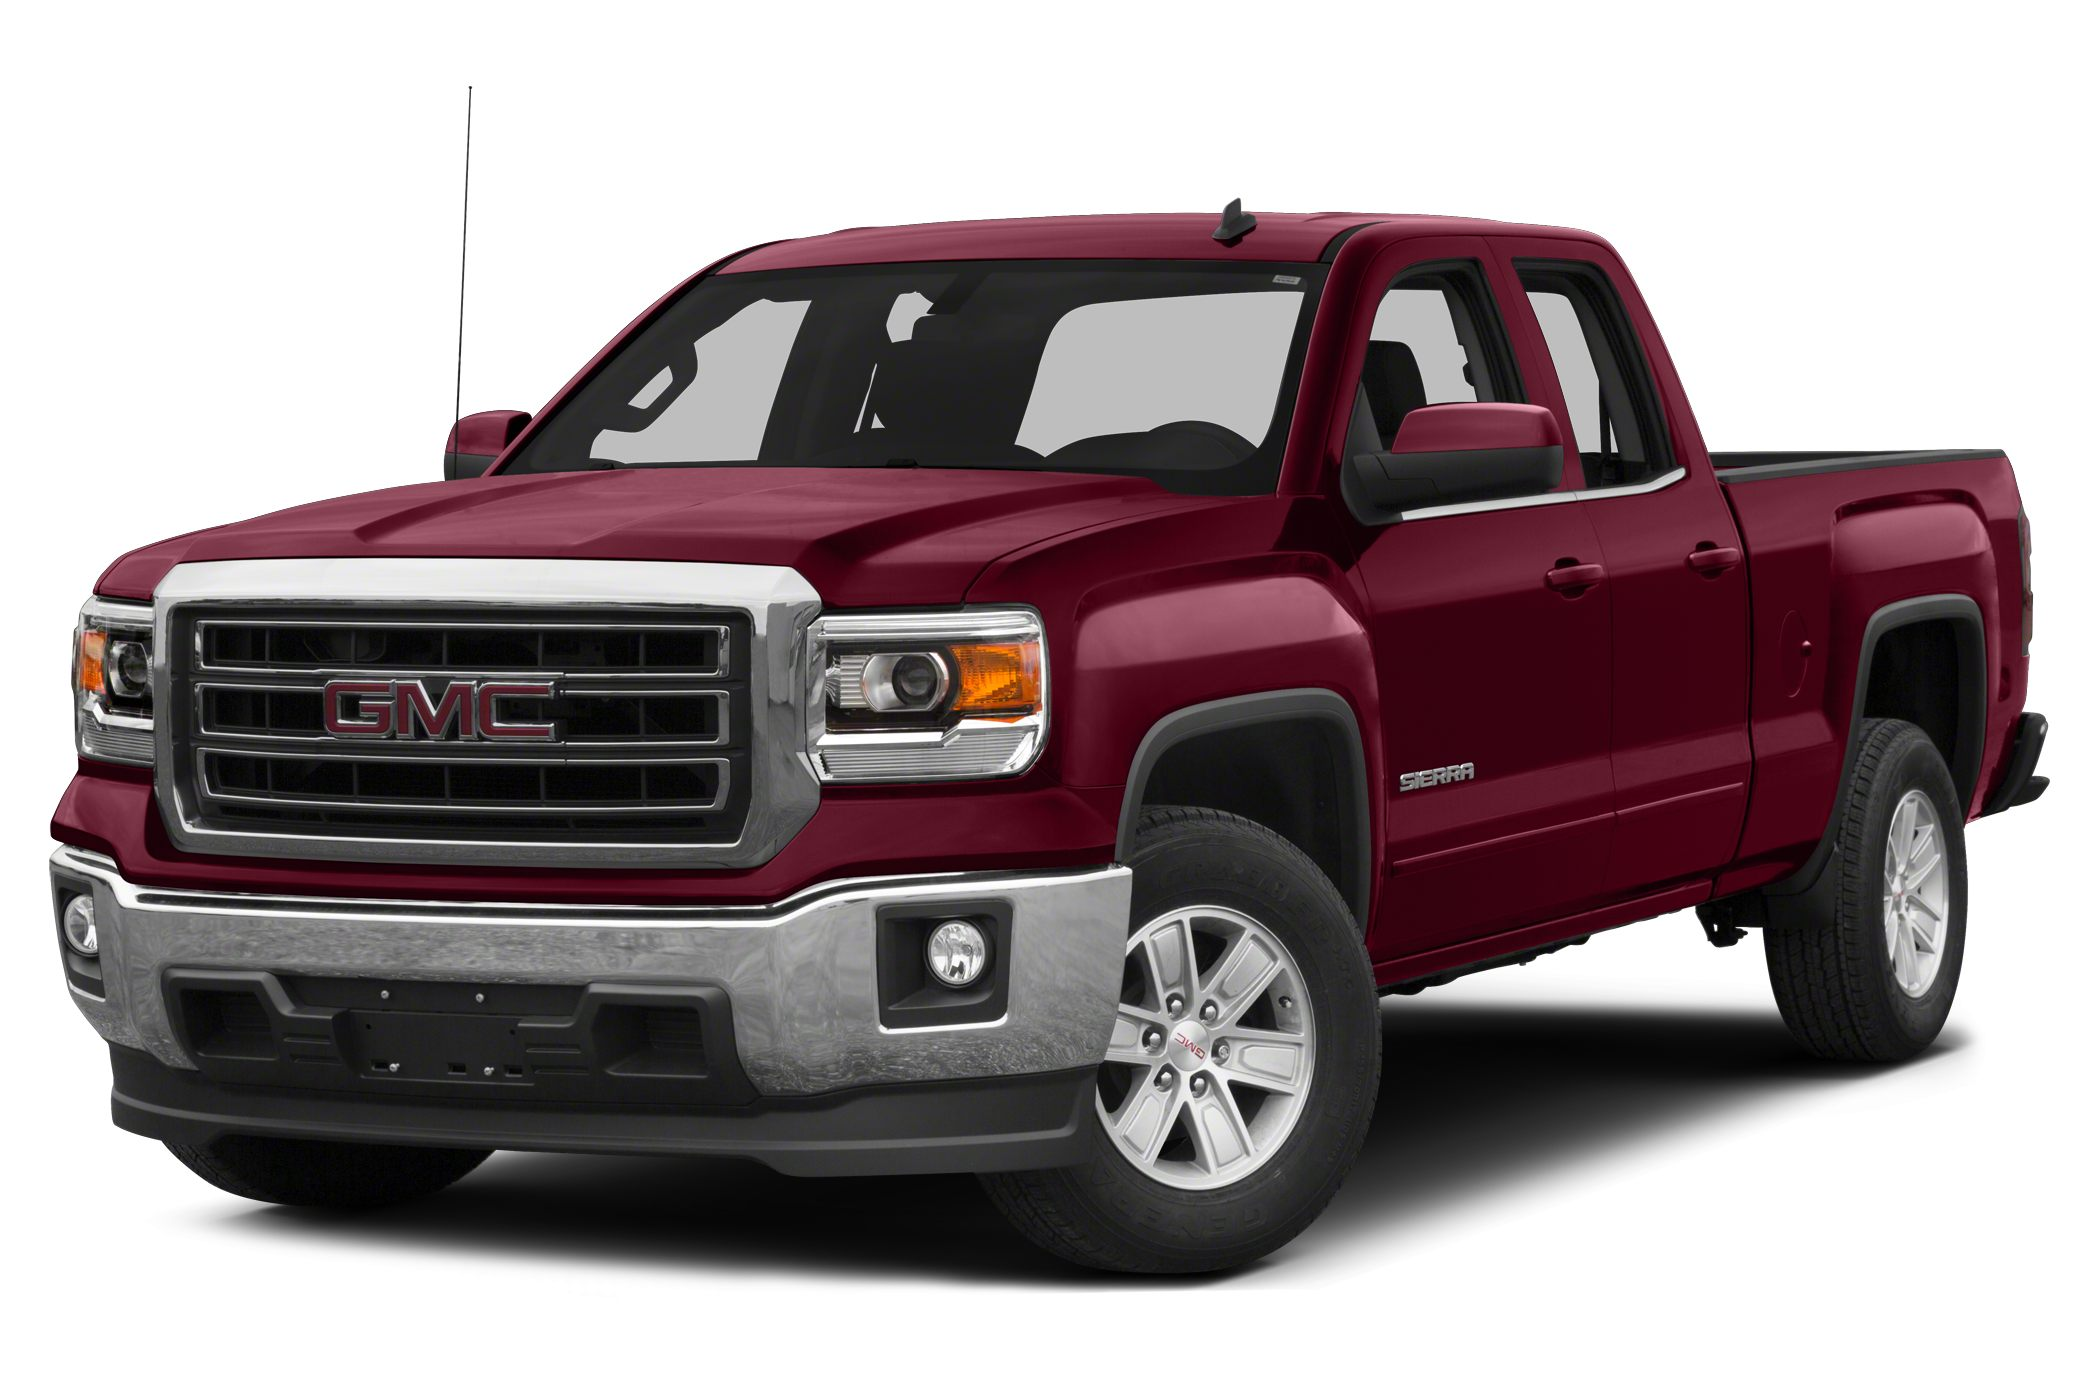 2015 GMC Sierra 1500 SLT Crew Cab Pickup for sale in Greer for $45,507 with 0 miles.